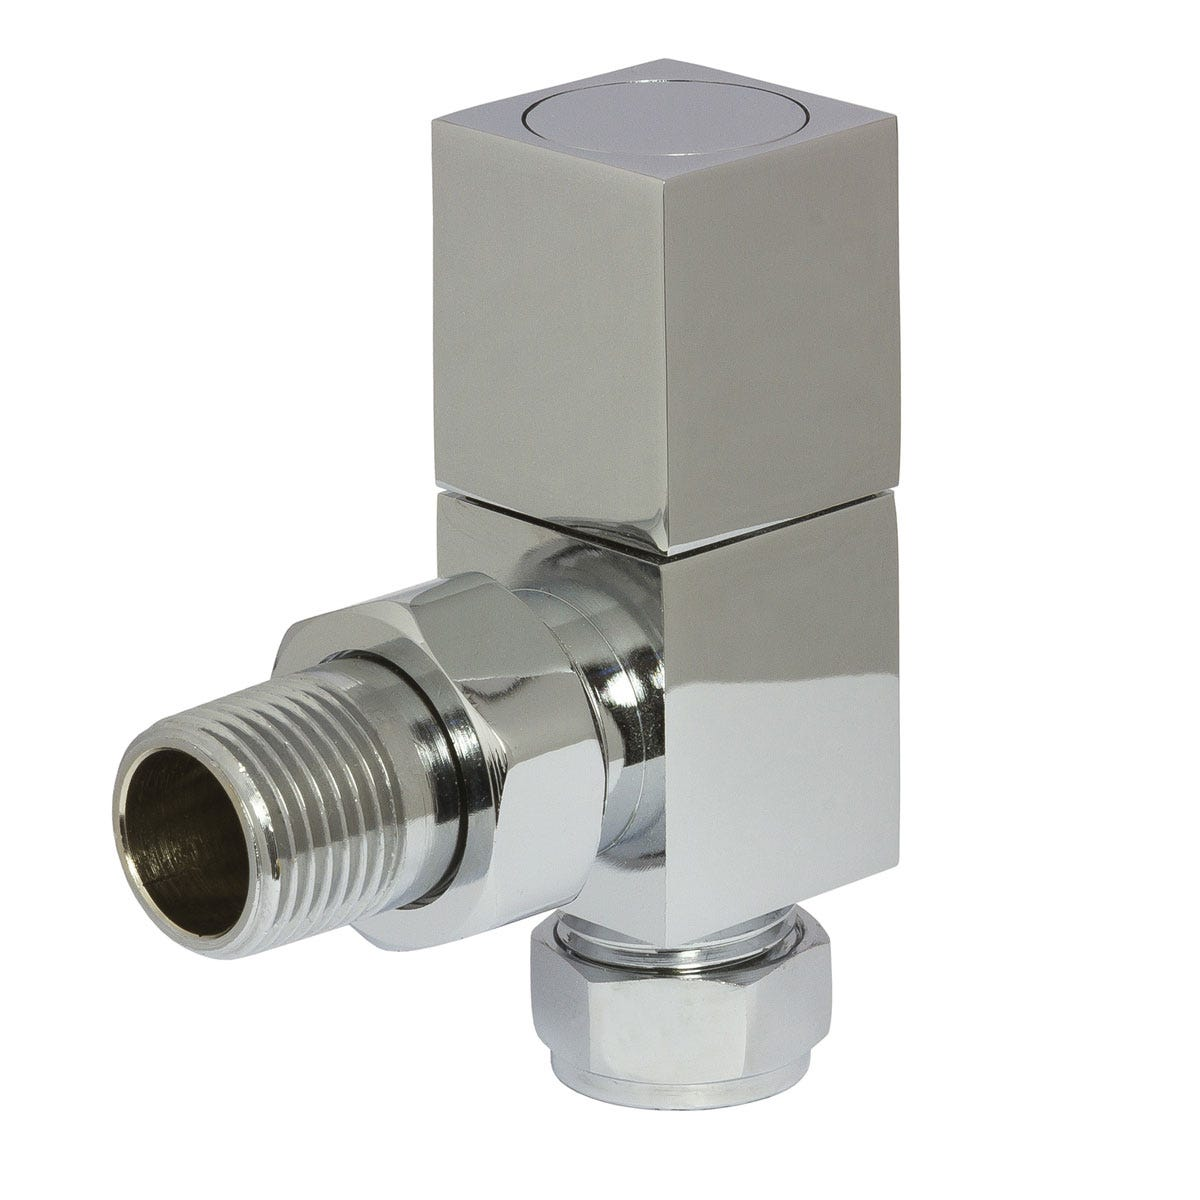 Towelrads Heating Style Square Angled Radiator Valves - Chrome